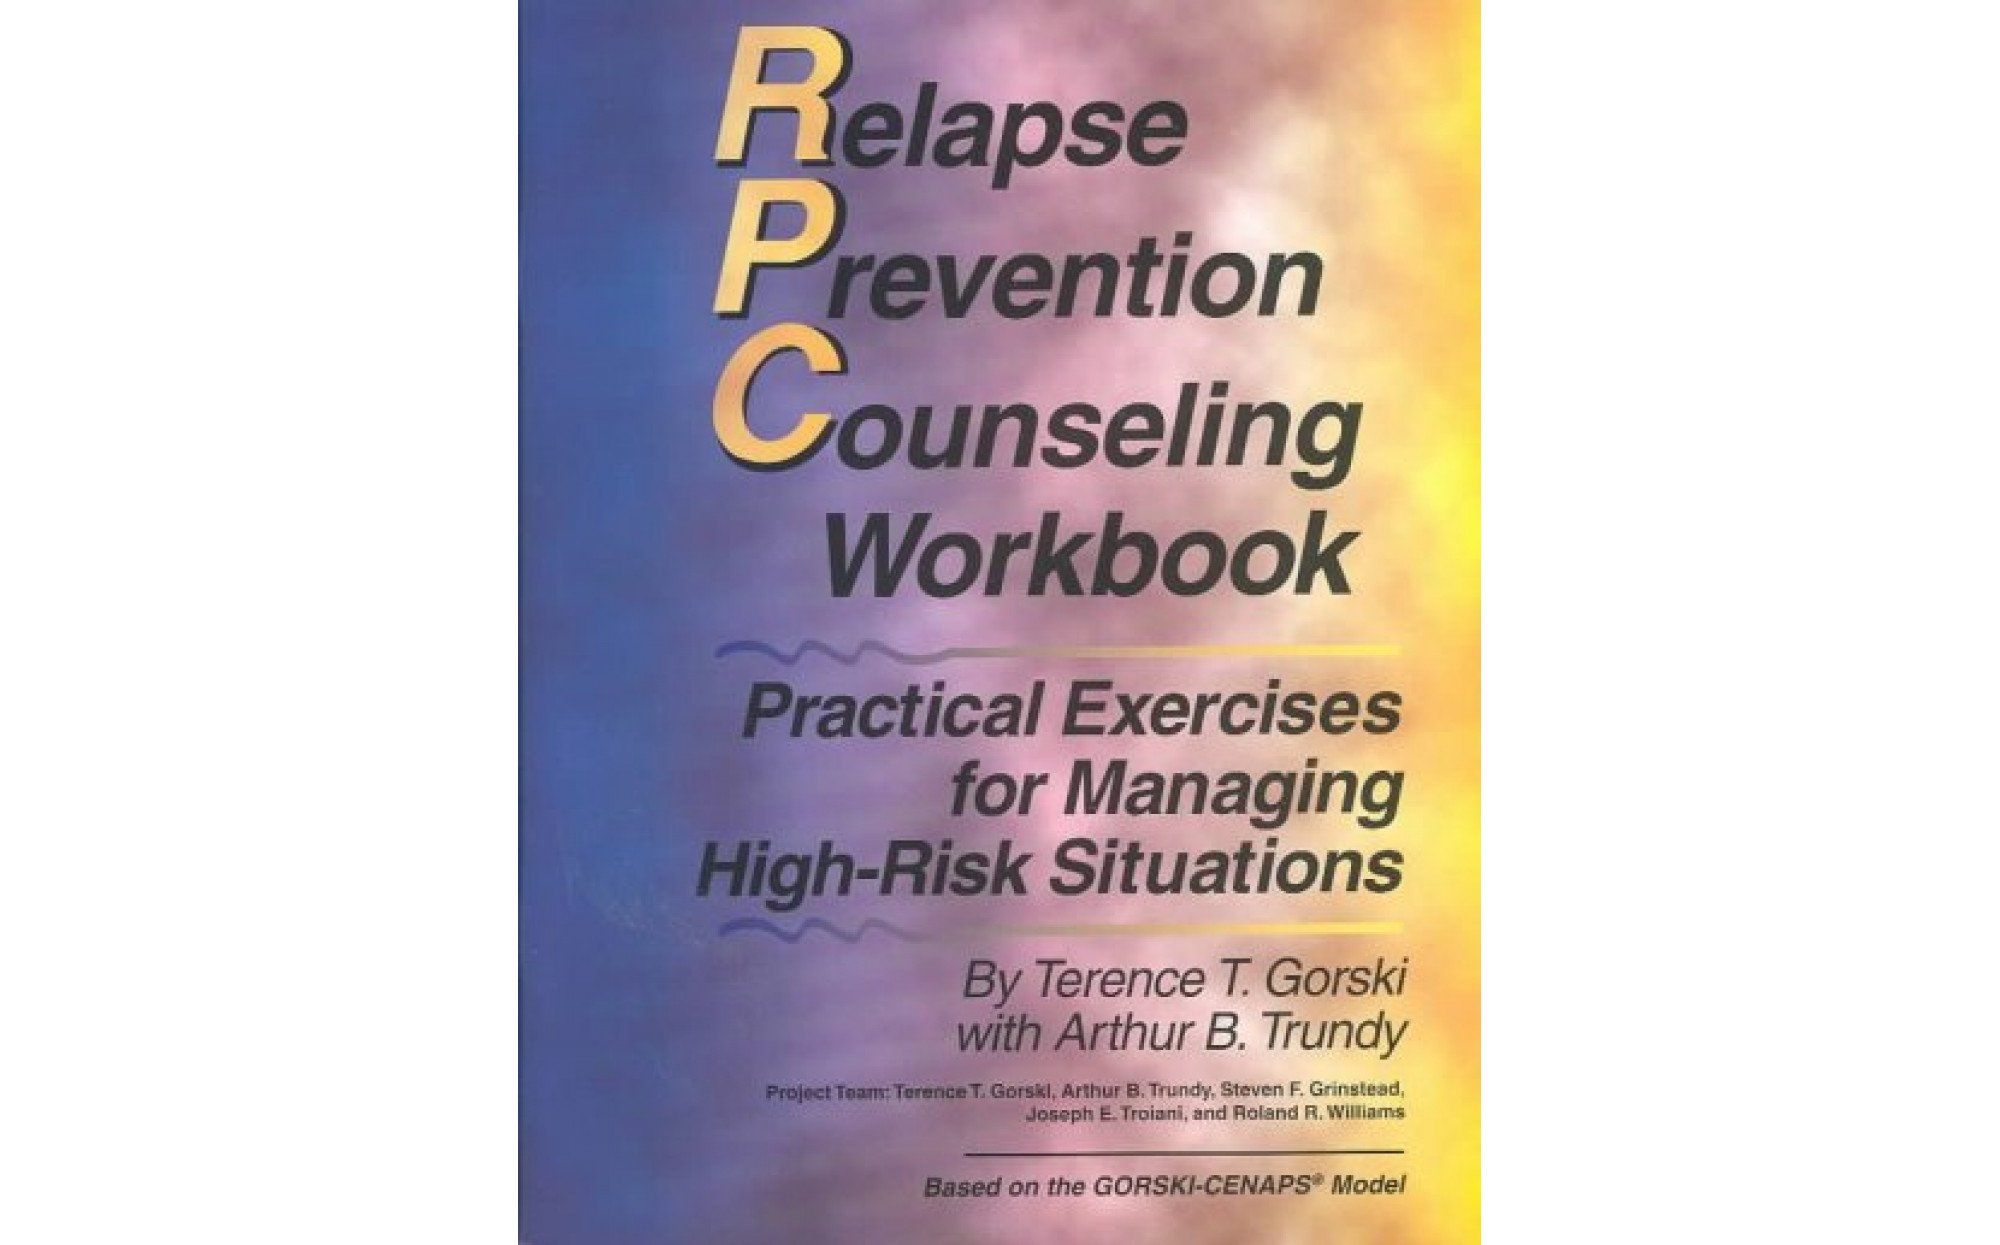 Worksheets High Risk Situations For Relapse Worksheet relapse prevention counseling workbook managing high risk situations